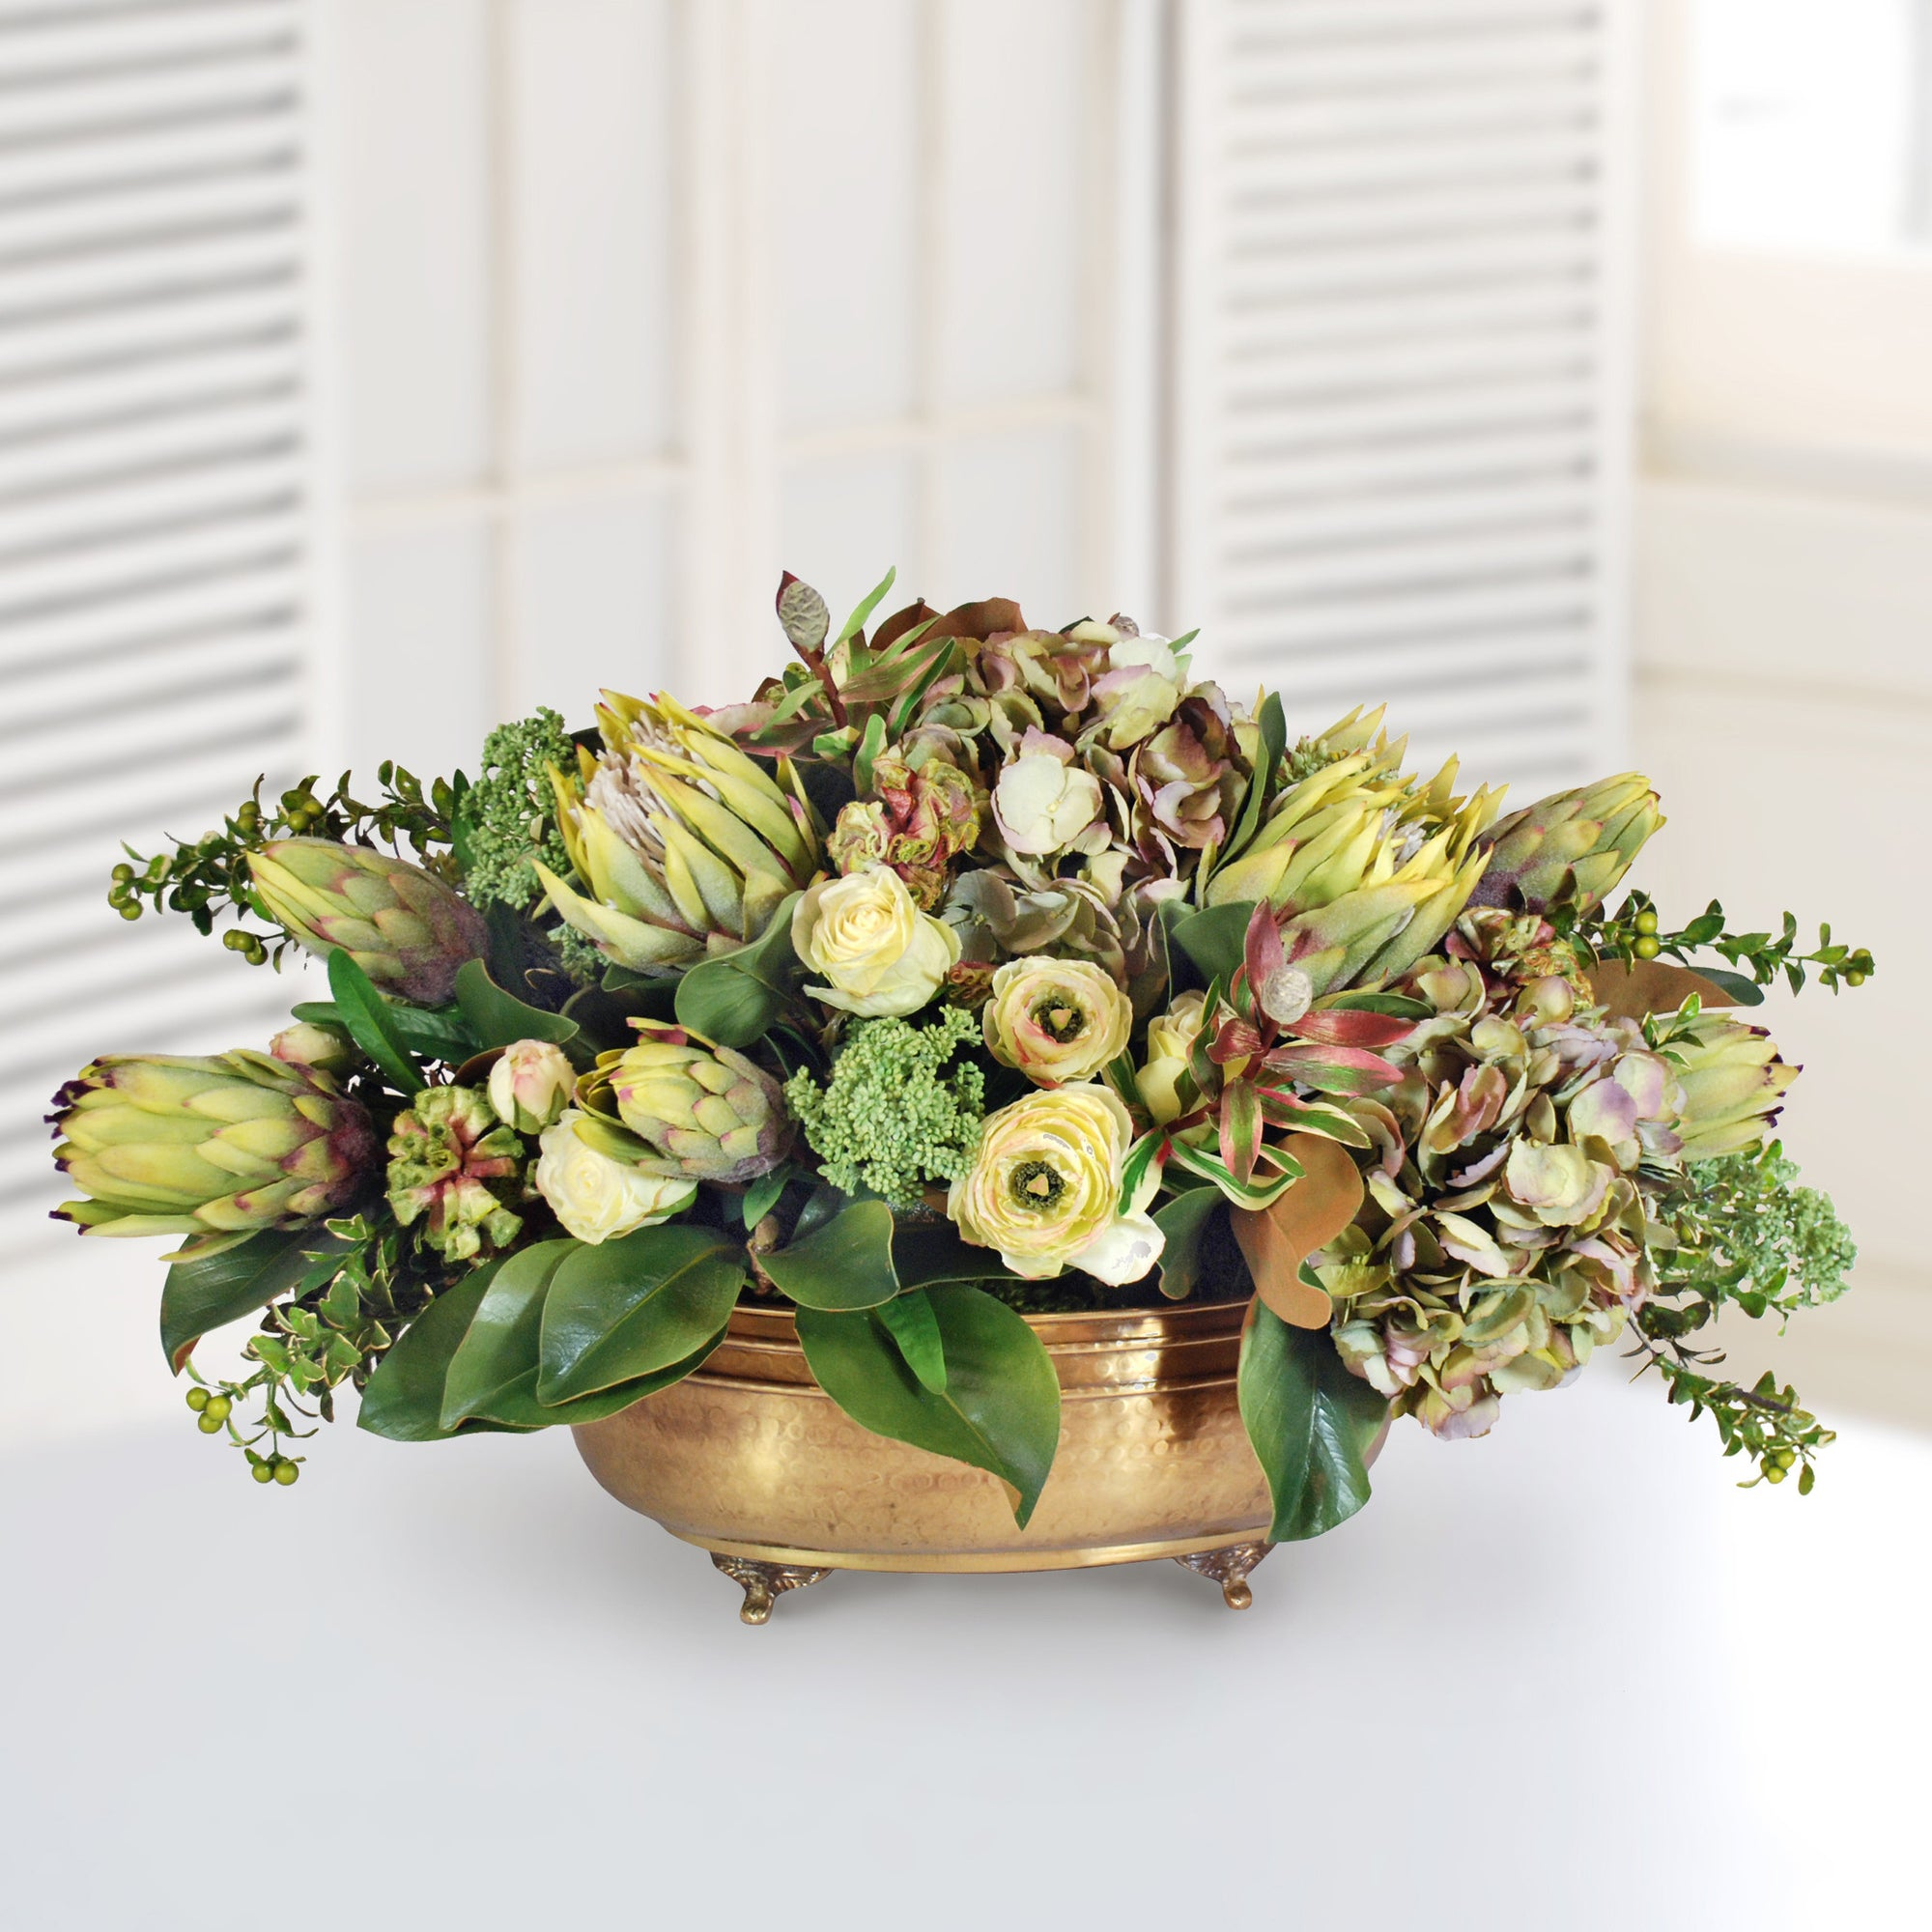 ANGELICA AND RANUNCULUS MIX (WHD065.GR) - Winward Home faux floral arrangements